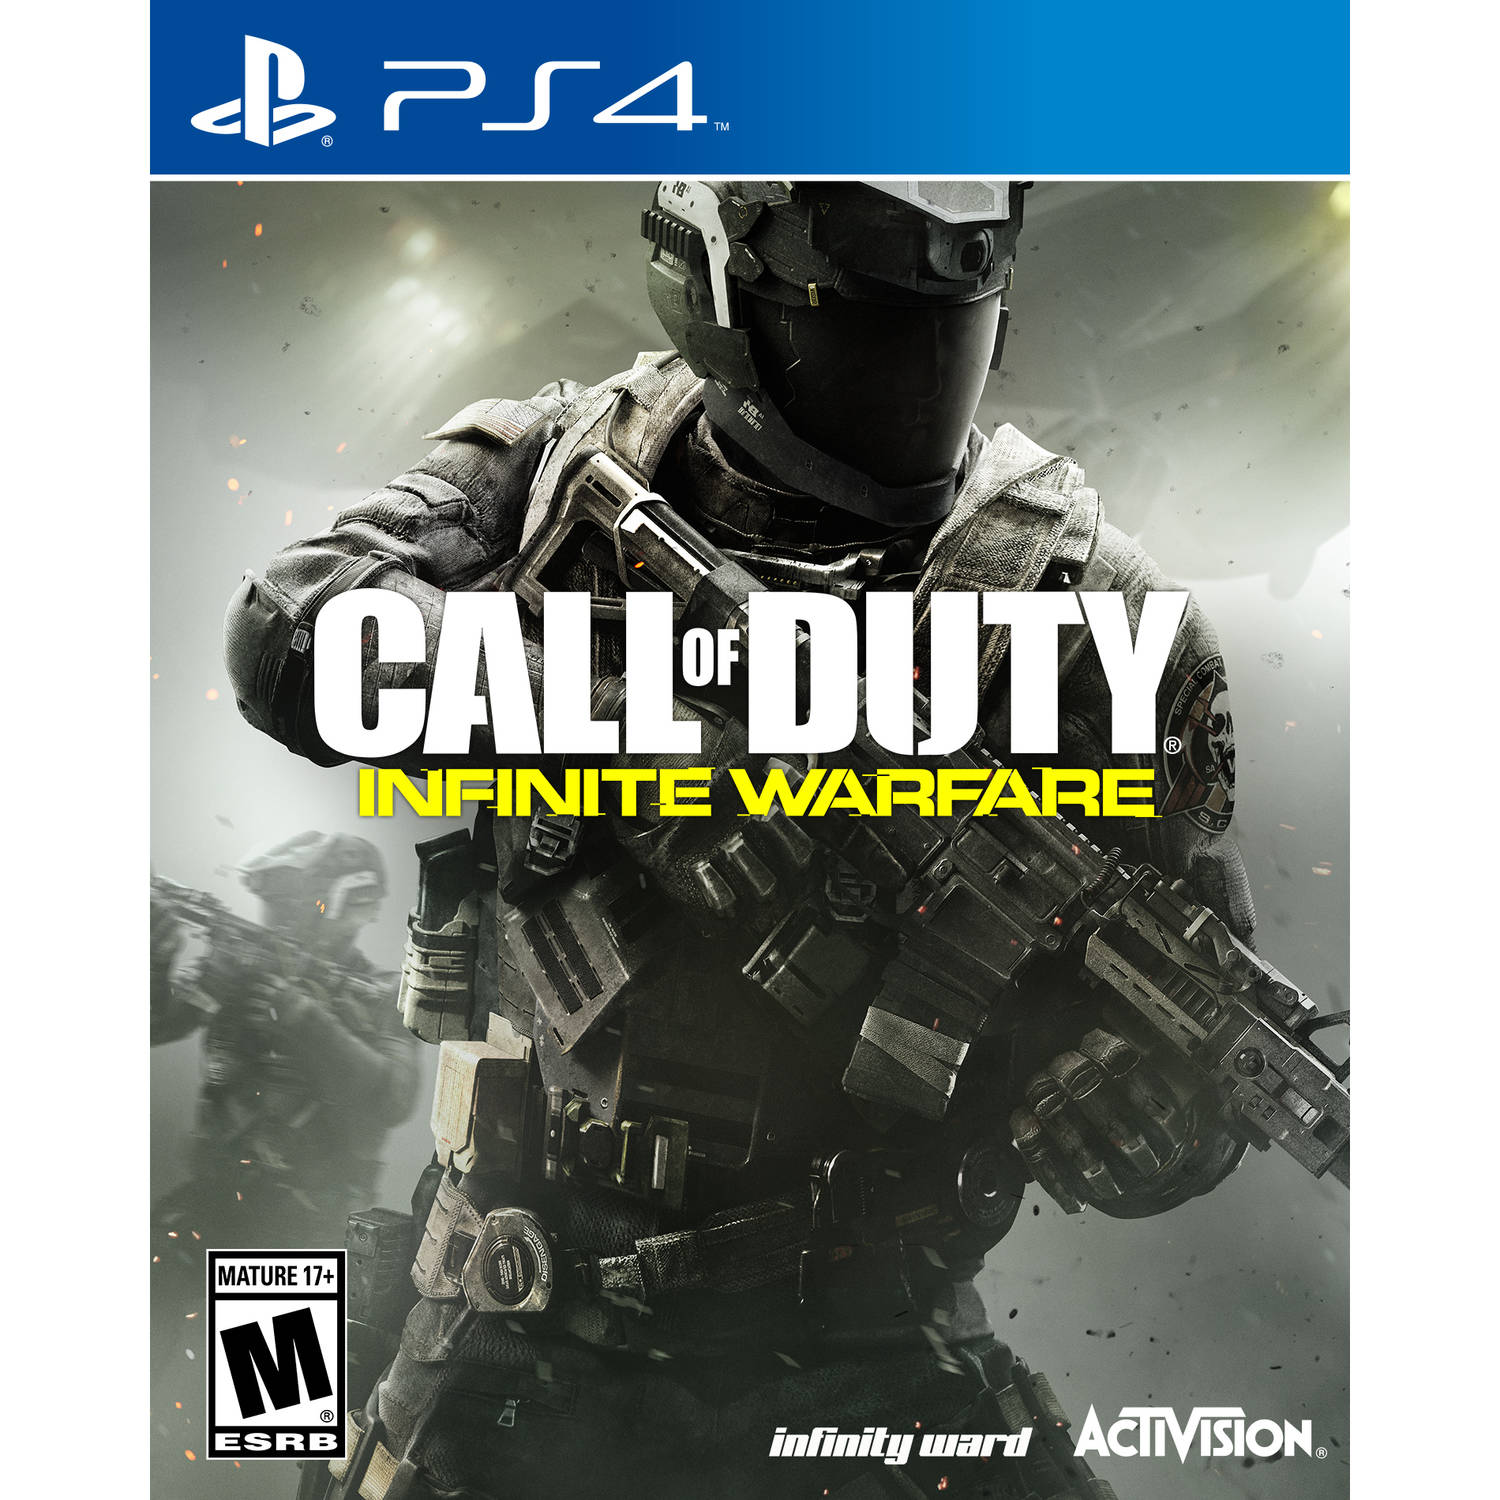 Call of Duty: Infinite Warfare, Activision, PlayStation 4, 047875878556 by Activision